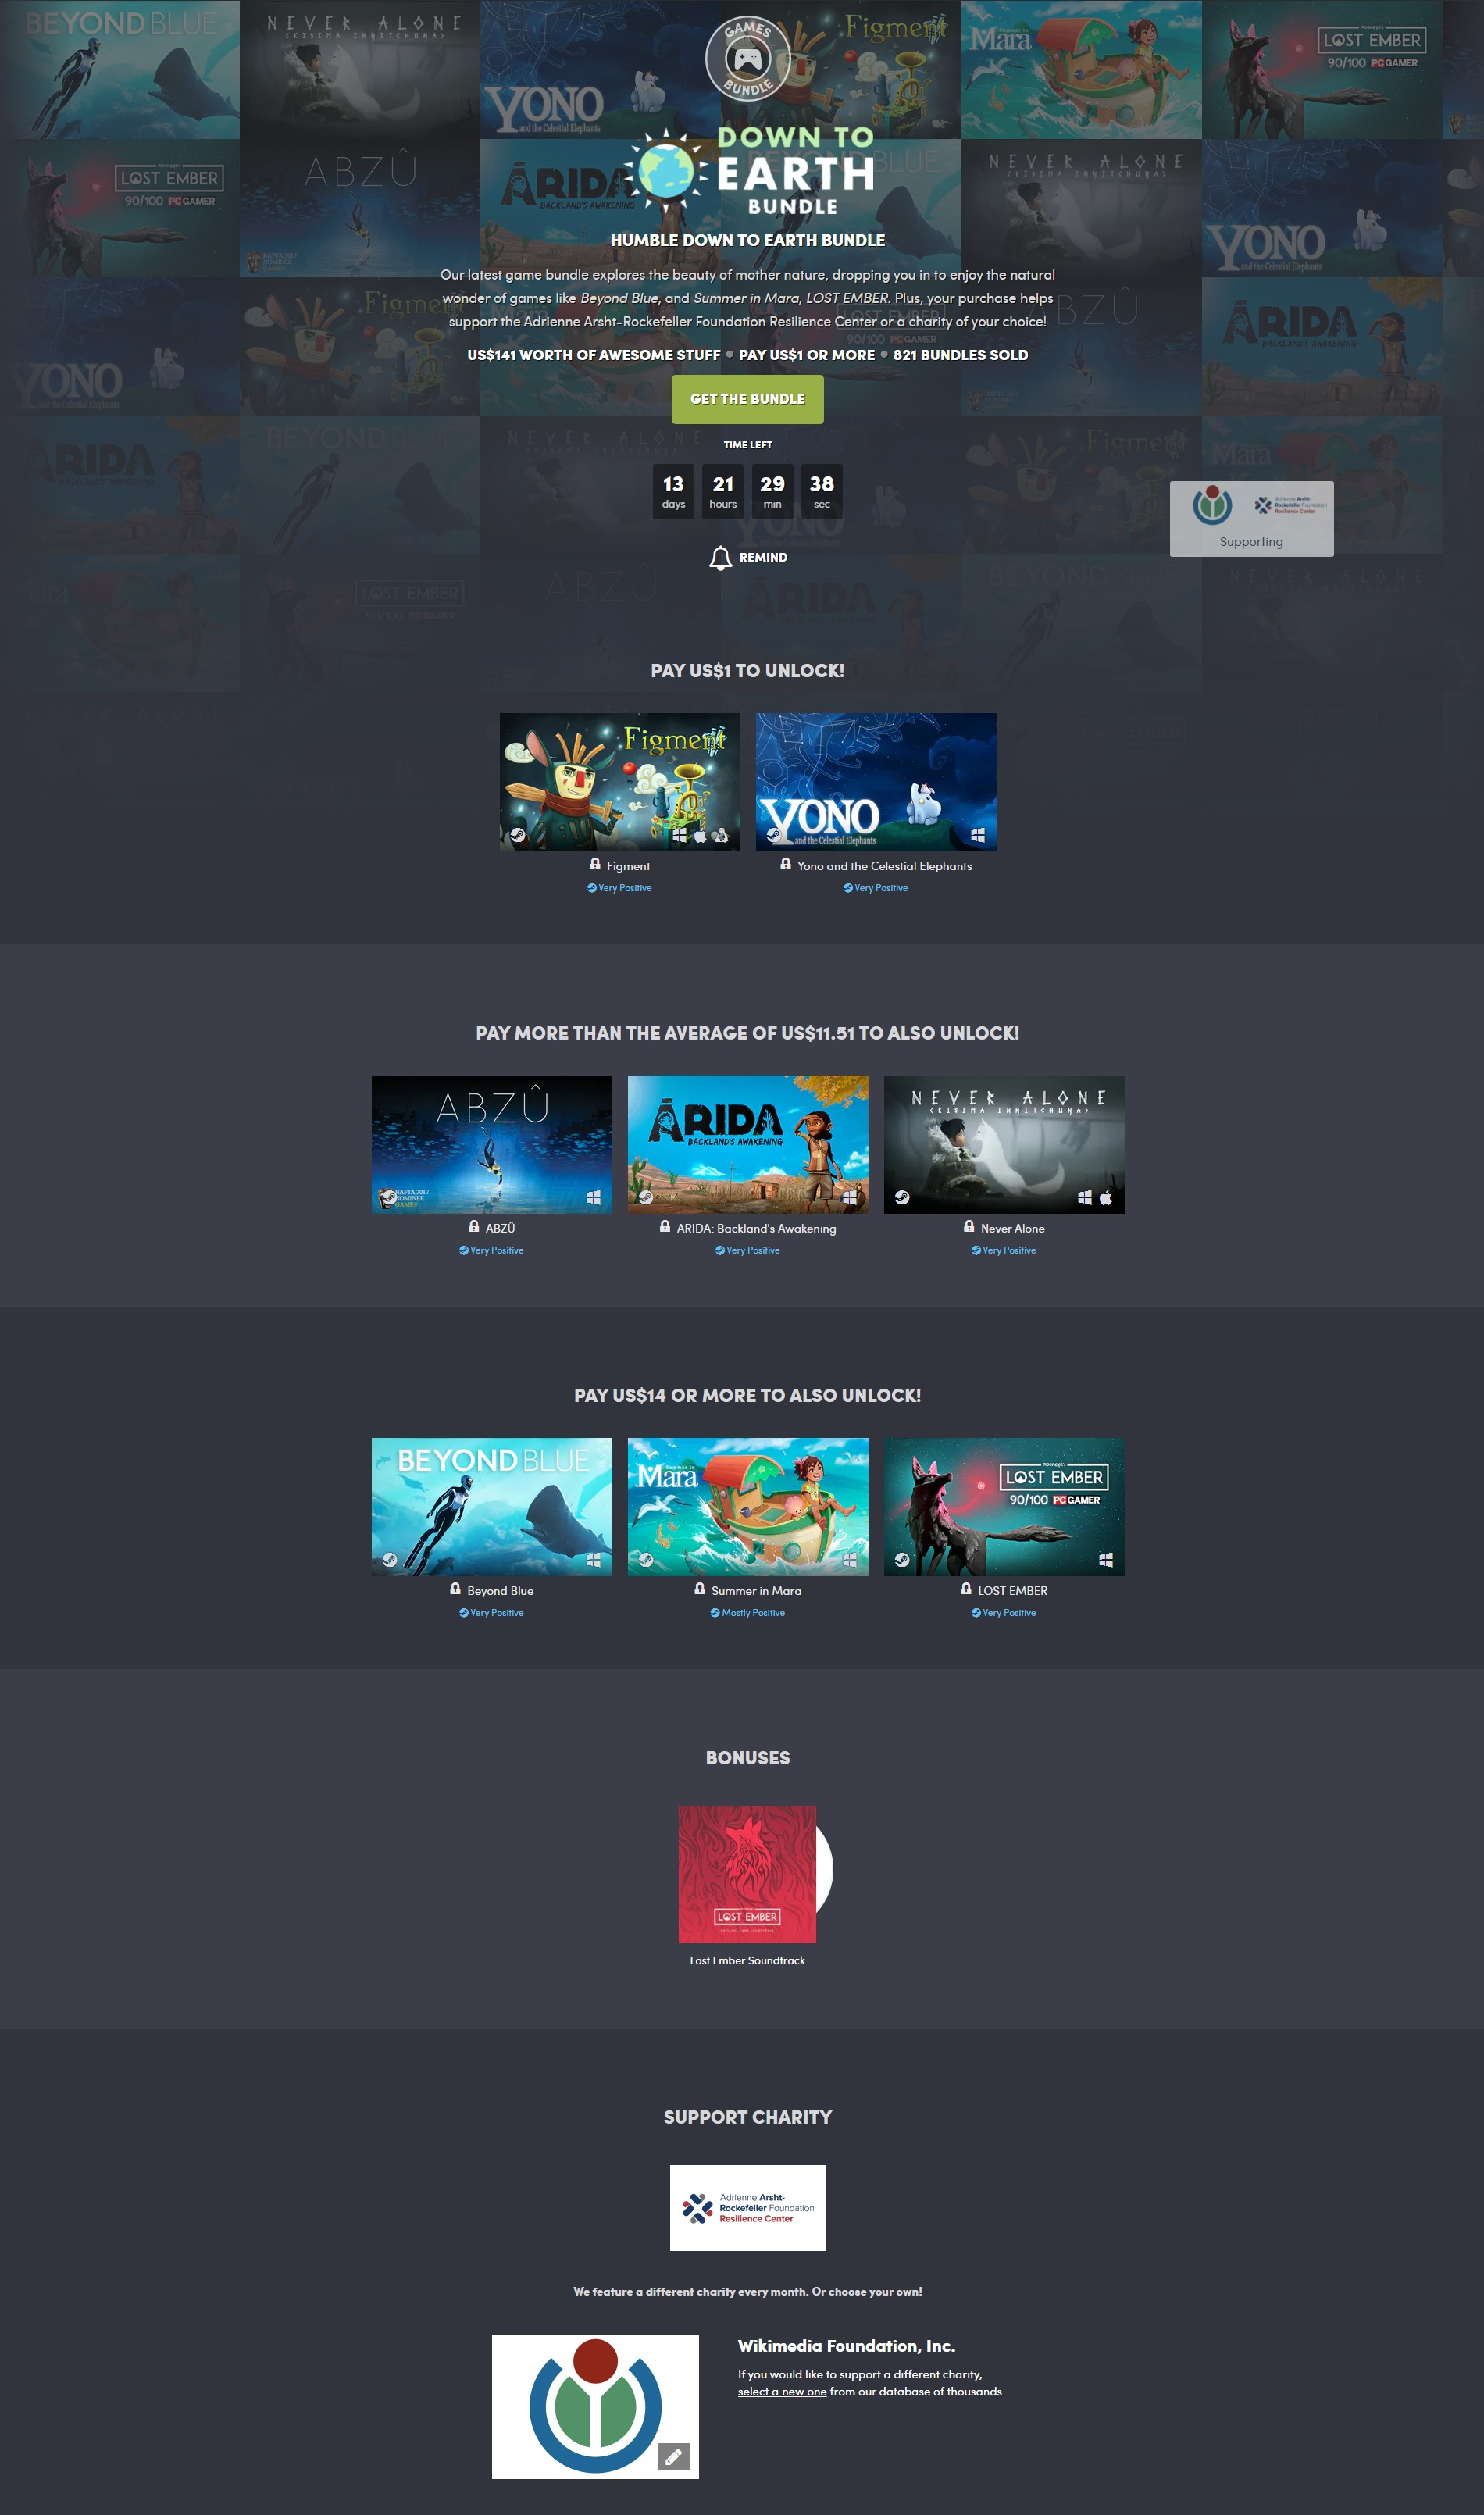 FireShot Capture 604 - Humble Down to Earth Bundle (pay what you want and help charity)_ - www.humblebundle.com.jpg